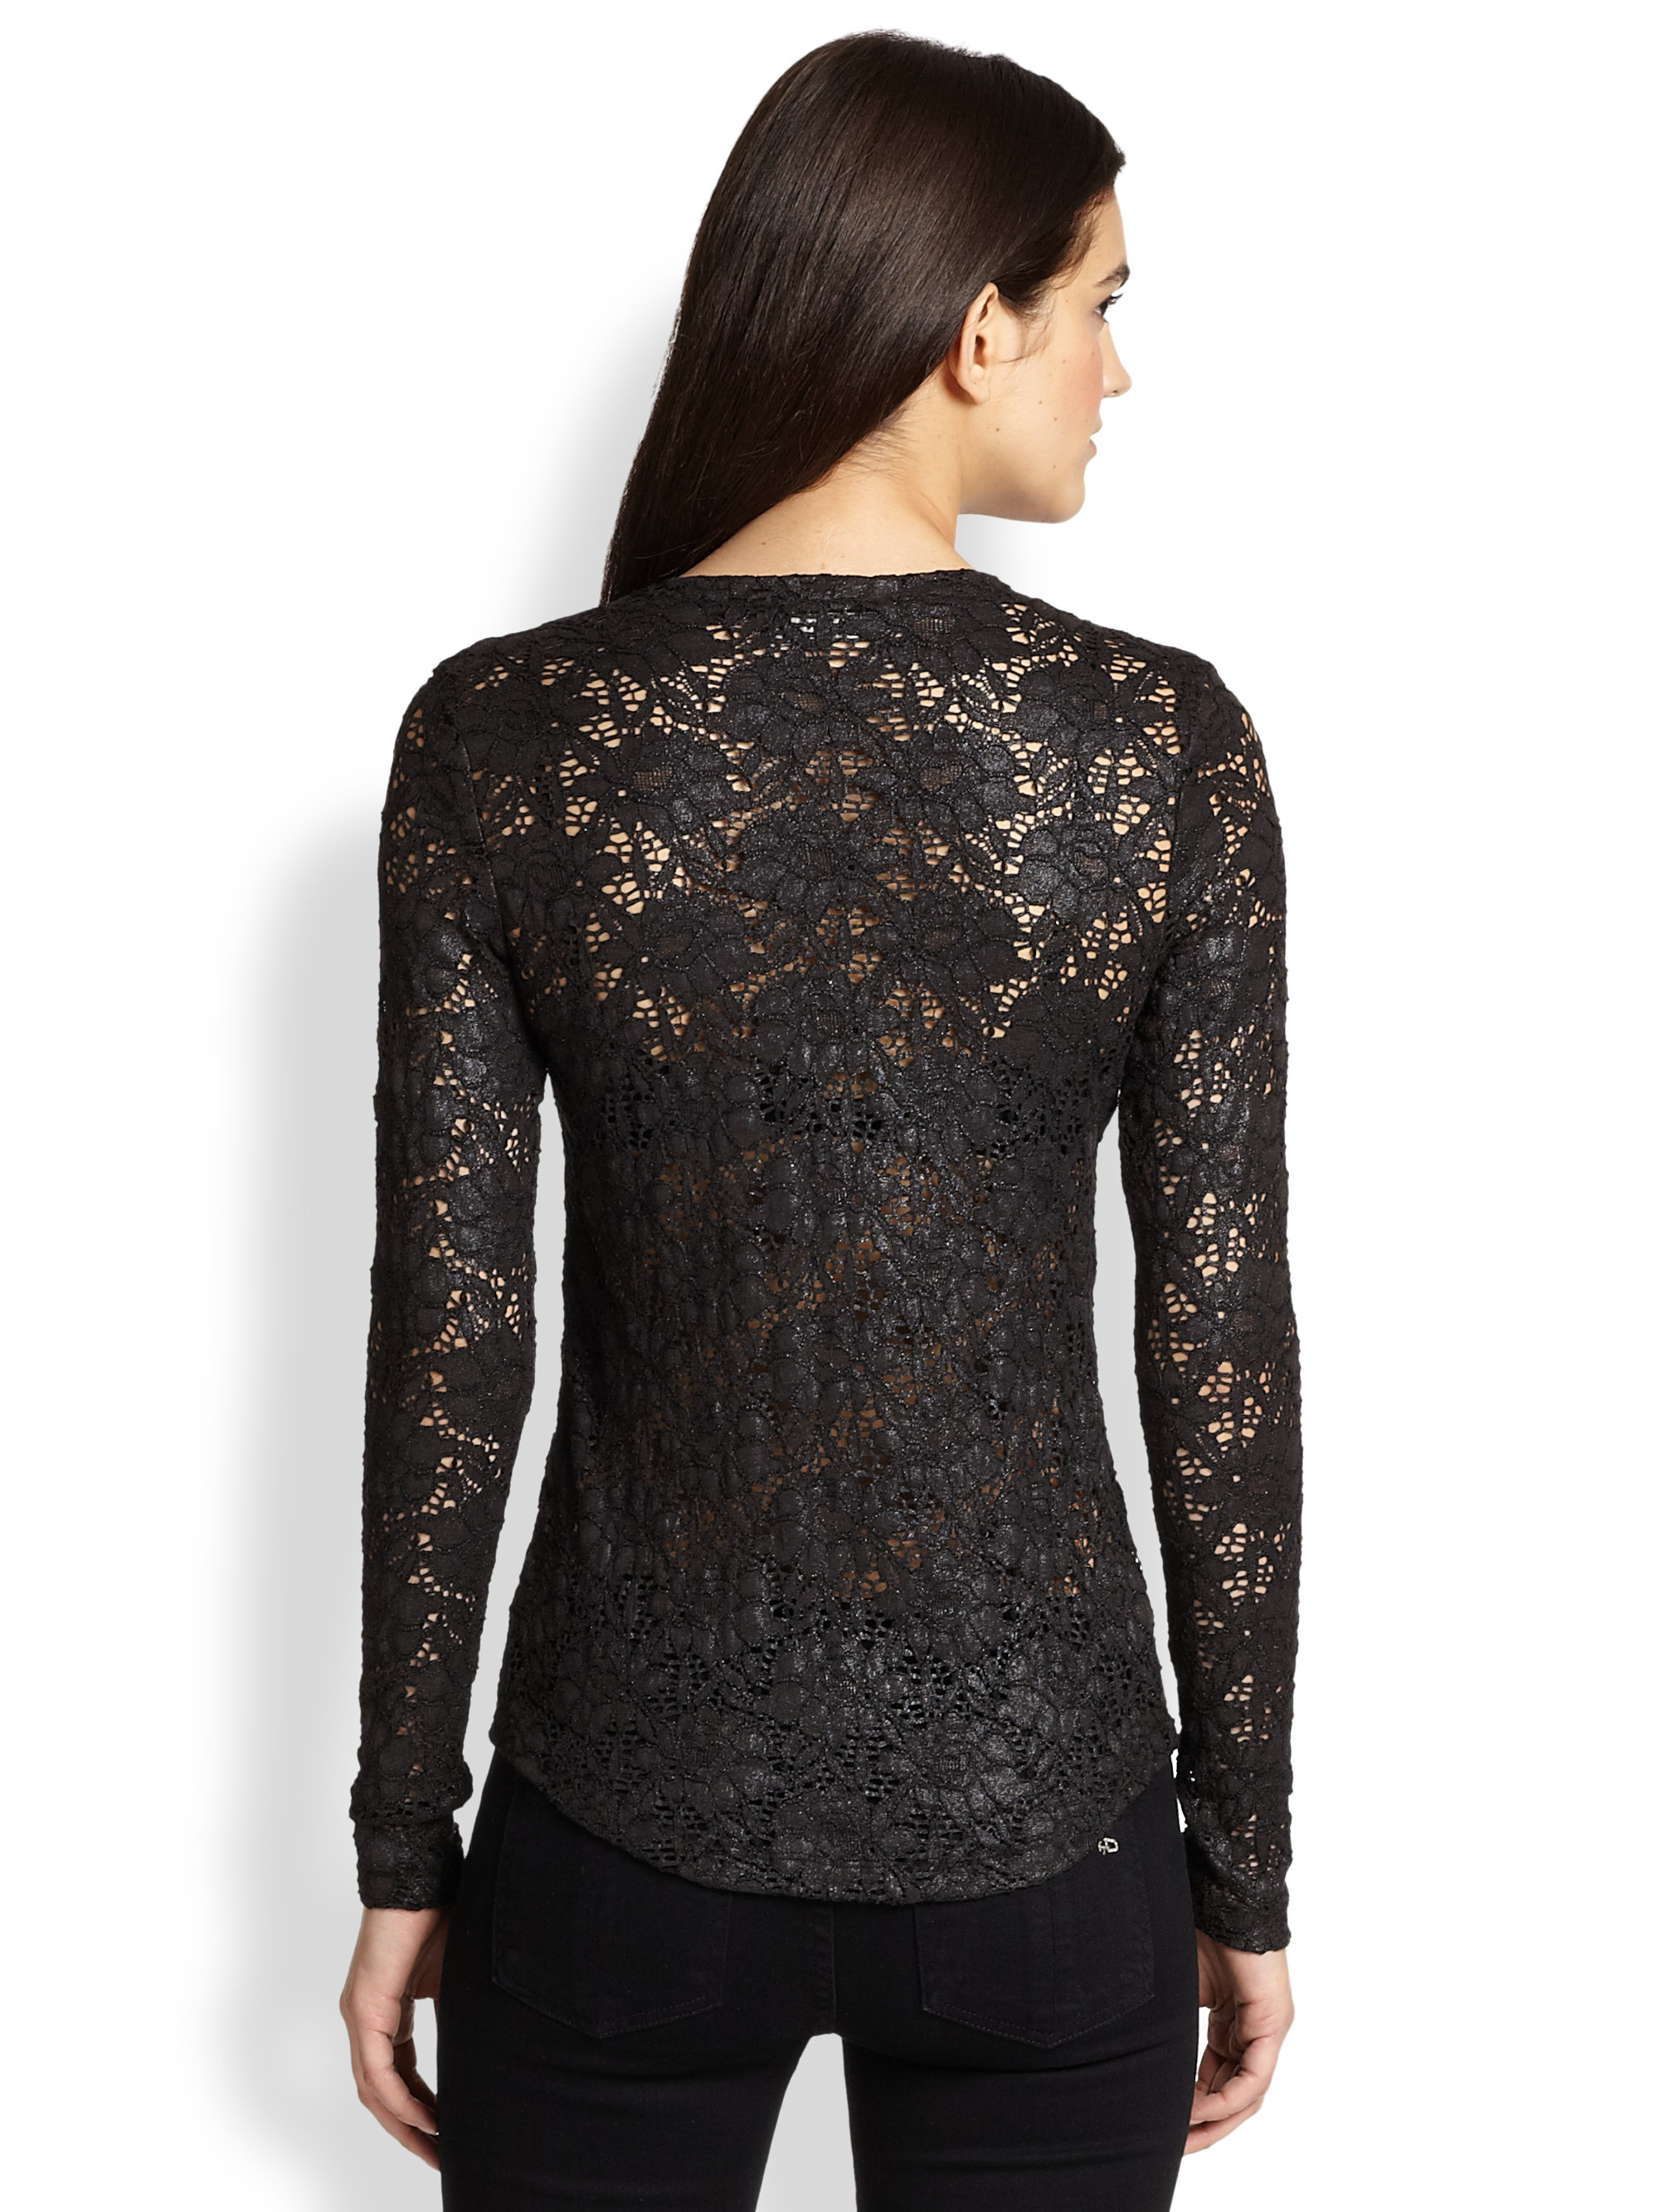 Simply Styled Women's Lace Long-Sleeve T-Shirt (1) Sold by Sears. $ $ Jhon Peters Women Lace Sheered Long Sleeve Slim Top. Sold by JHON PETERS. $ Simply Styled Women's Lace Top - Floral (1) Sold by Sears. $ $ DEAL ENDS SOON Alisa Pan Women's Sexy Sheer Lace Long Sleeve Top